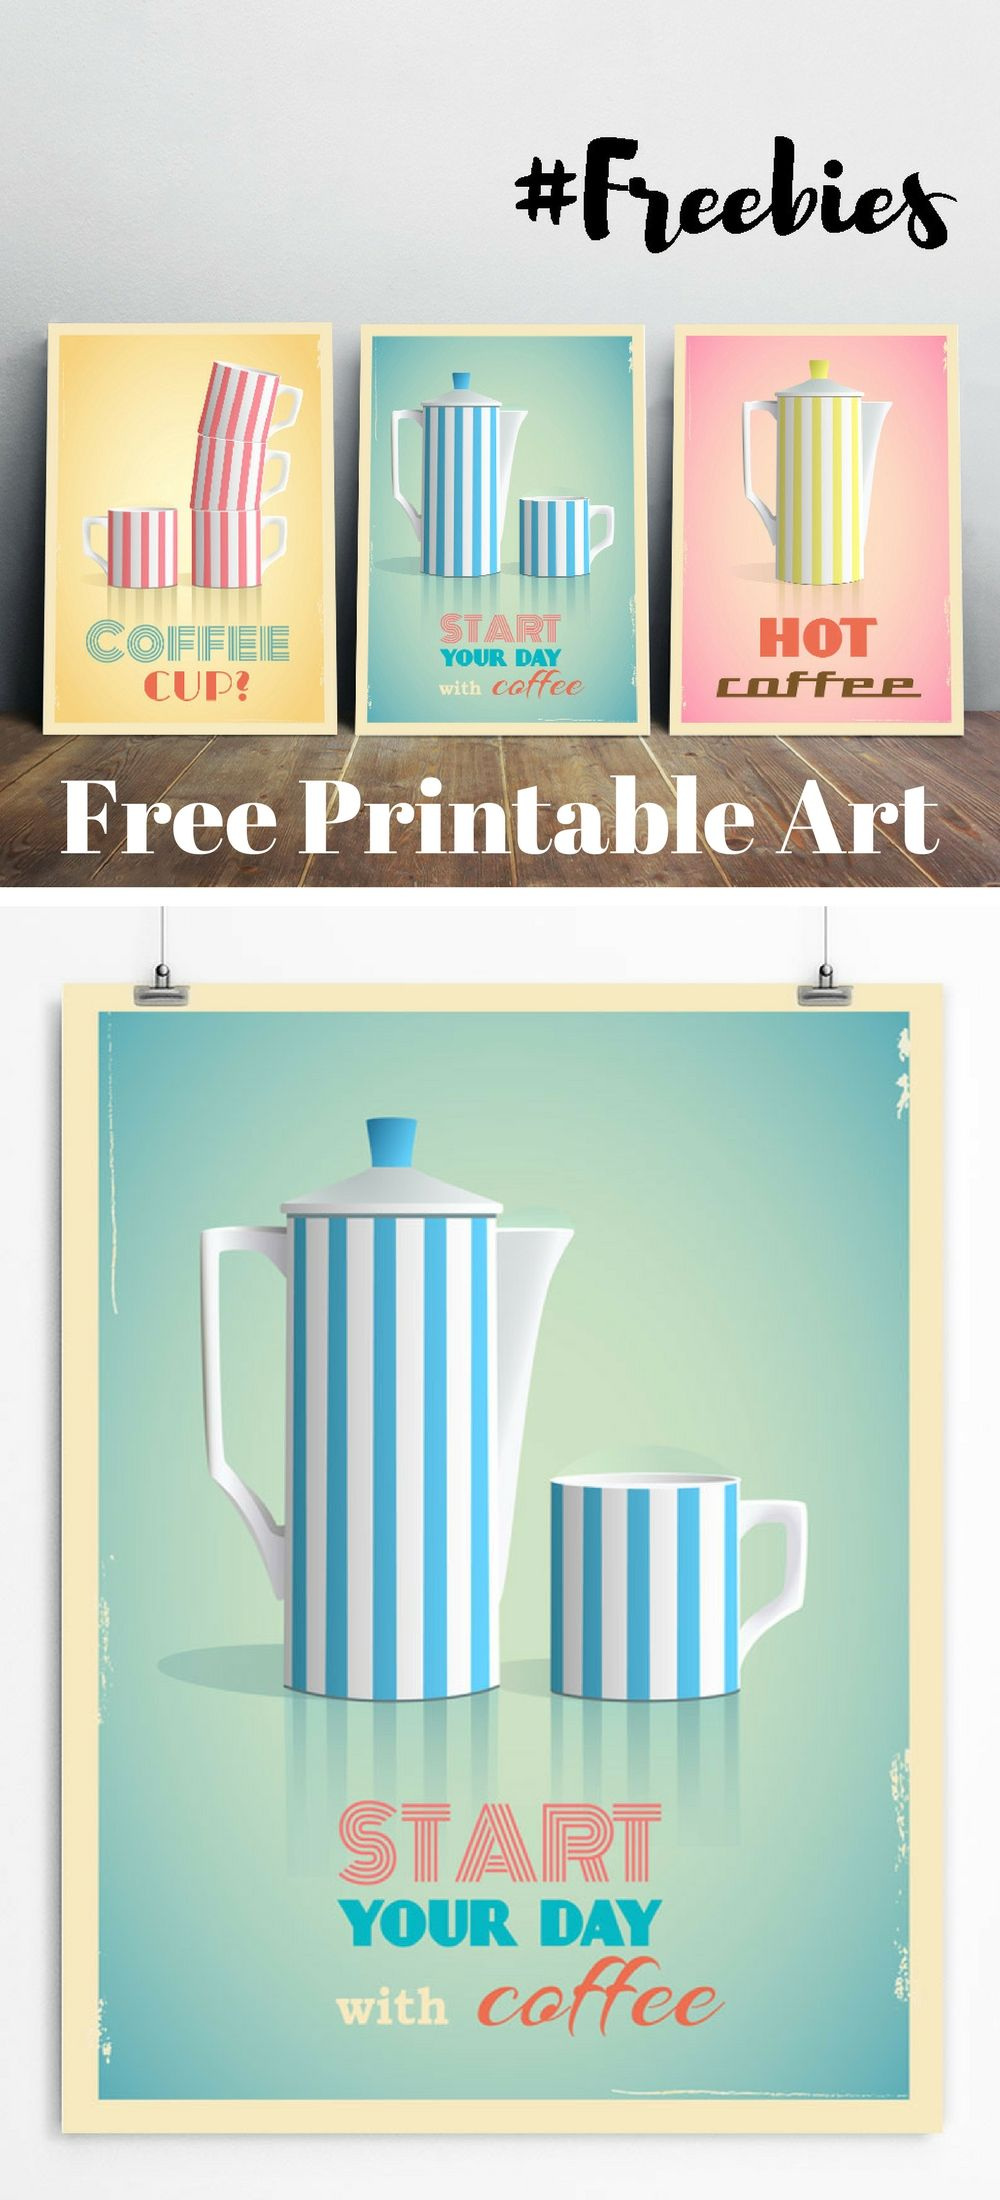 Download Free Wall Art Printables. Use them to decorate your kitchen ...